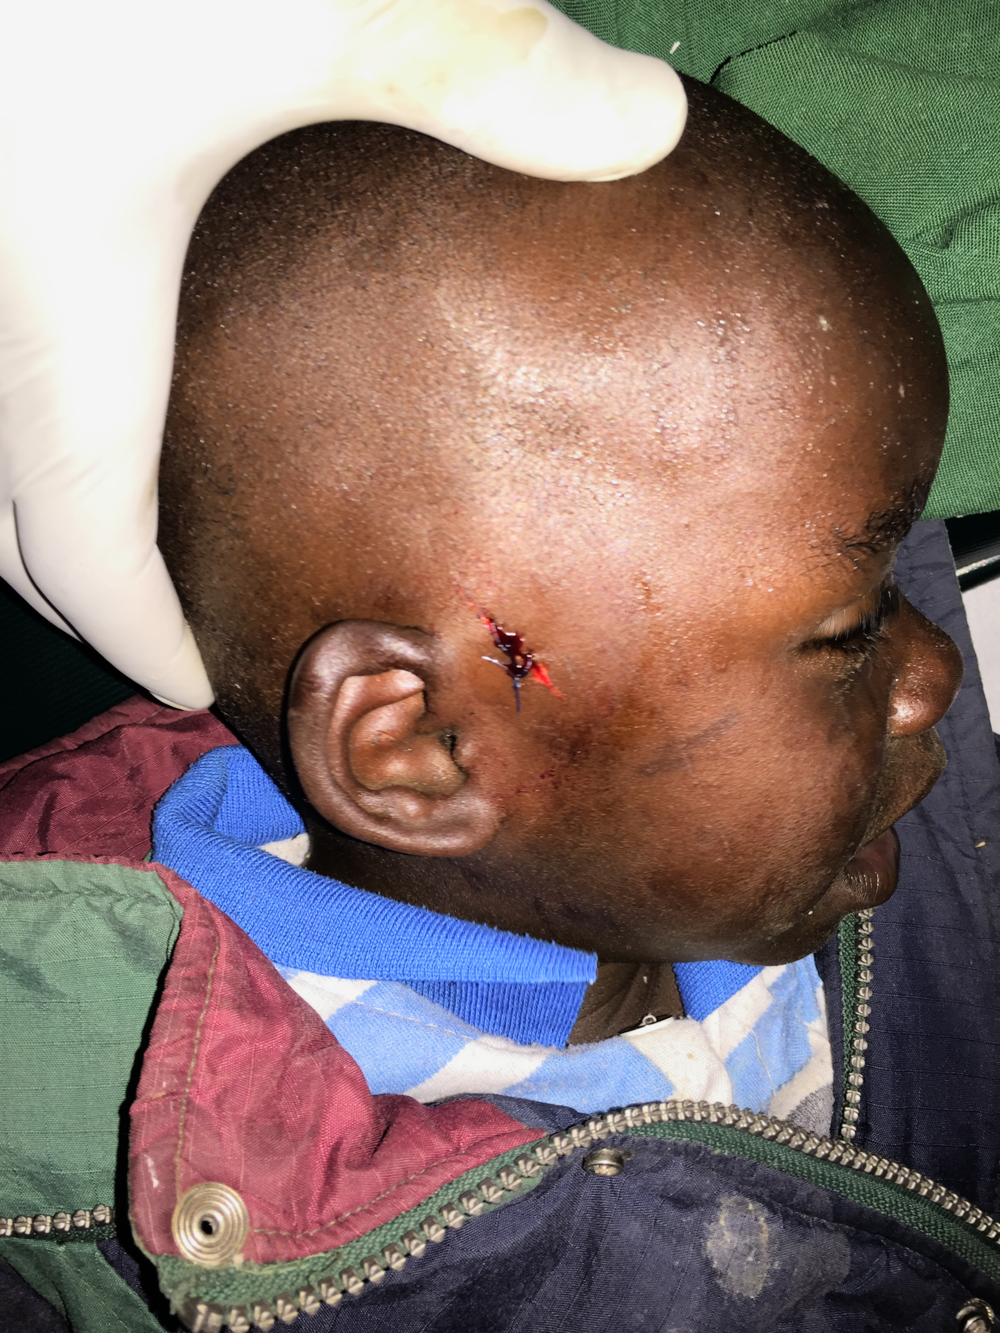 The young patient needed to have a large splinter removed. His wound was treated and stitched by Dr. Sue.